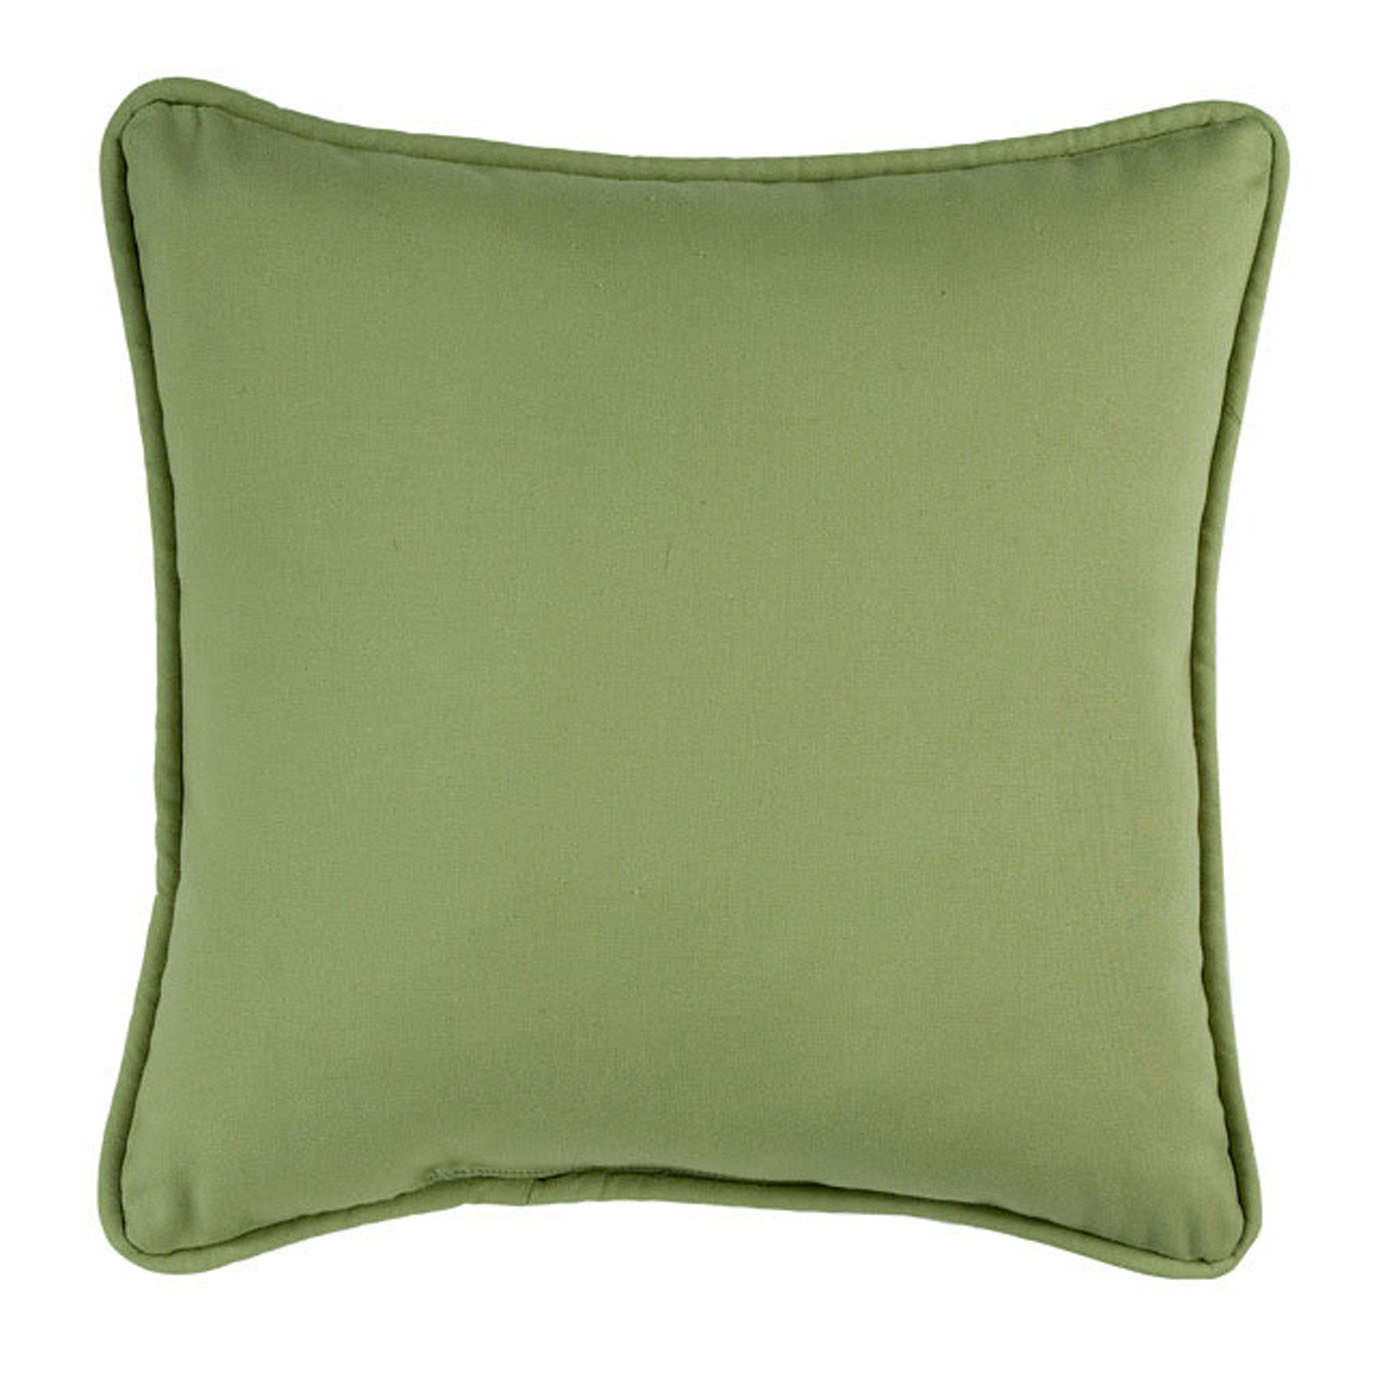 Park Avenue Pear Square Pillow